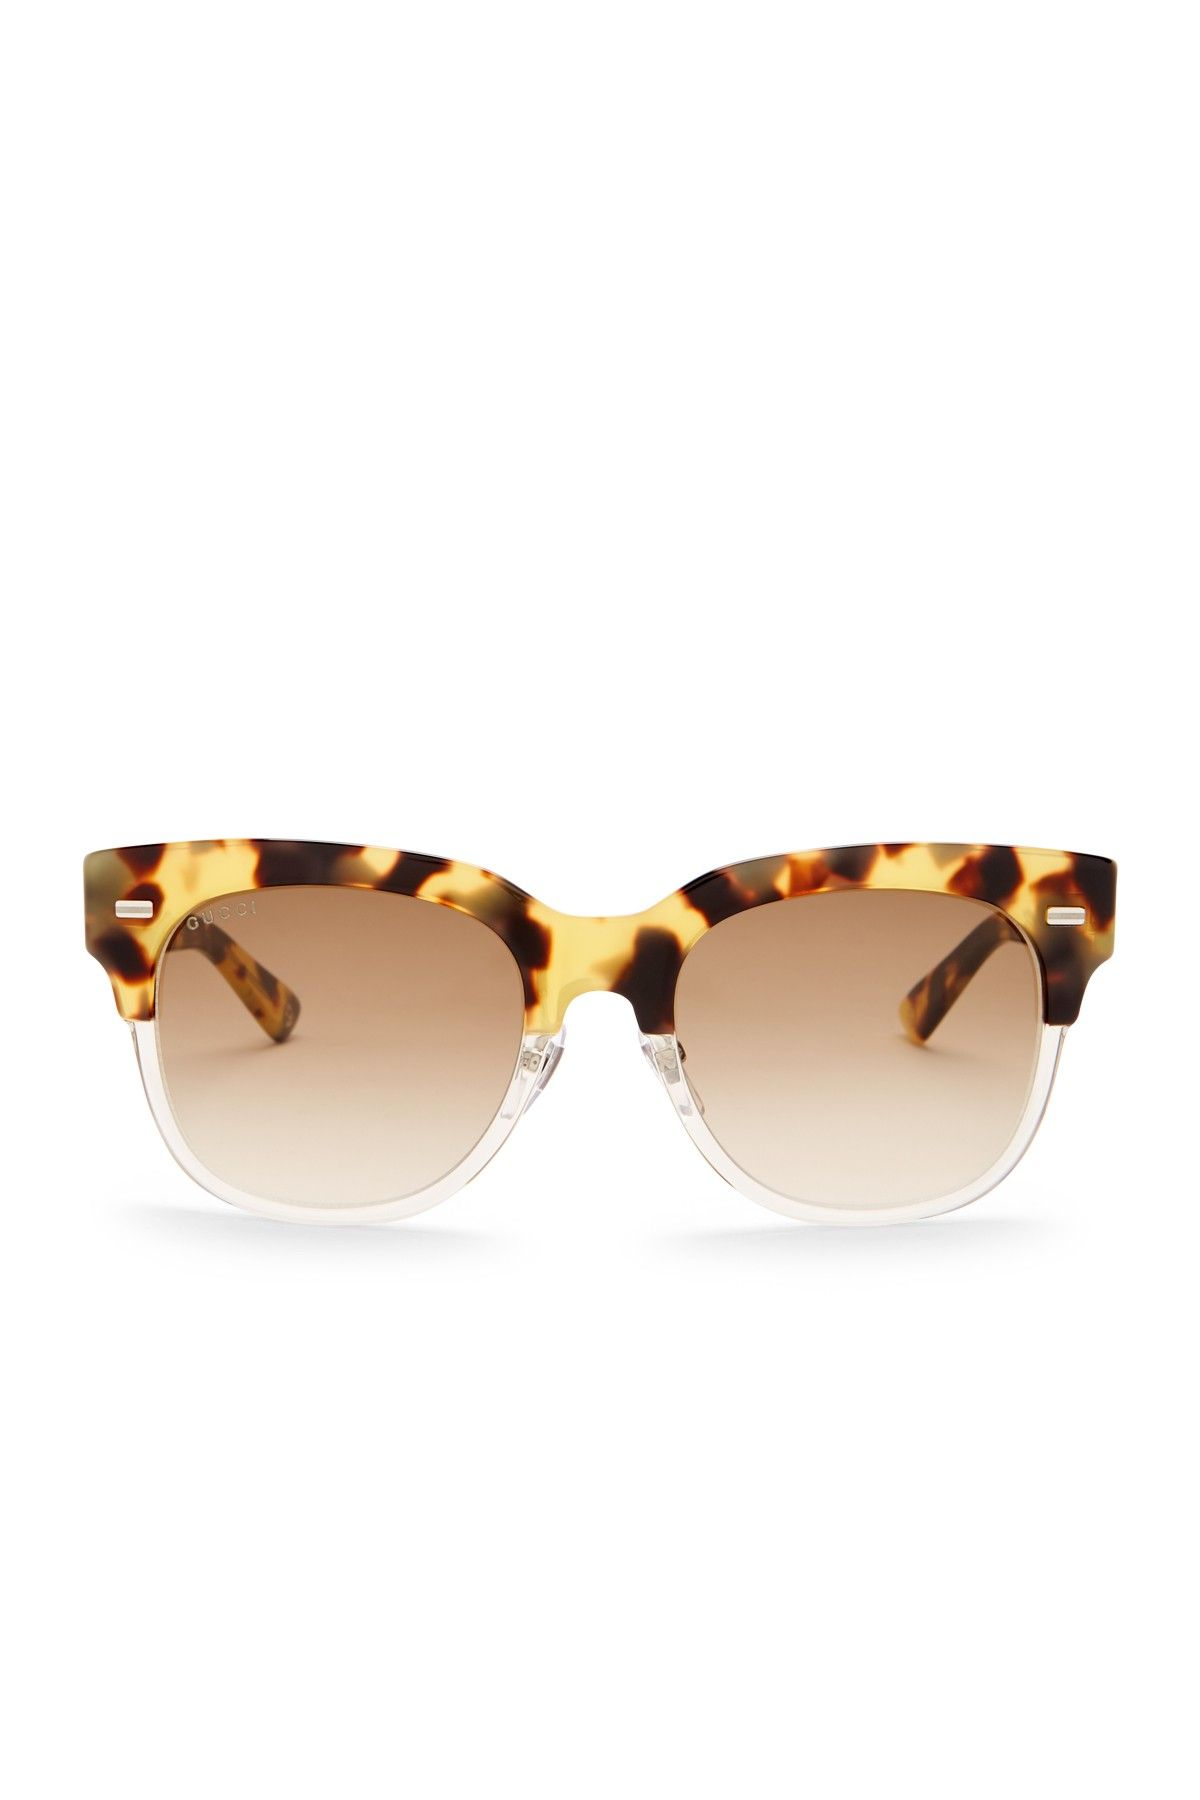 d3586dee45e88 Women s Clubmaster Acetate Frame Sunglasses by GUCCI on  nordstrom rack